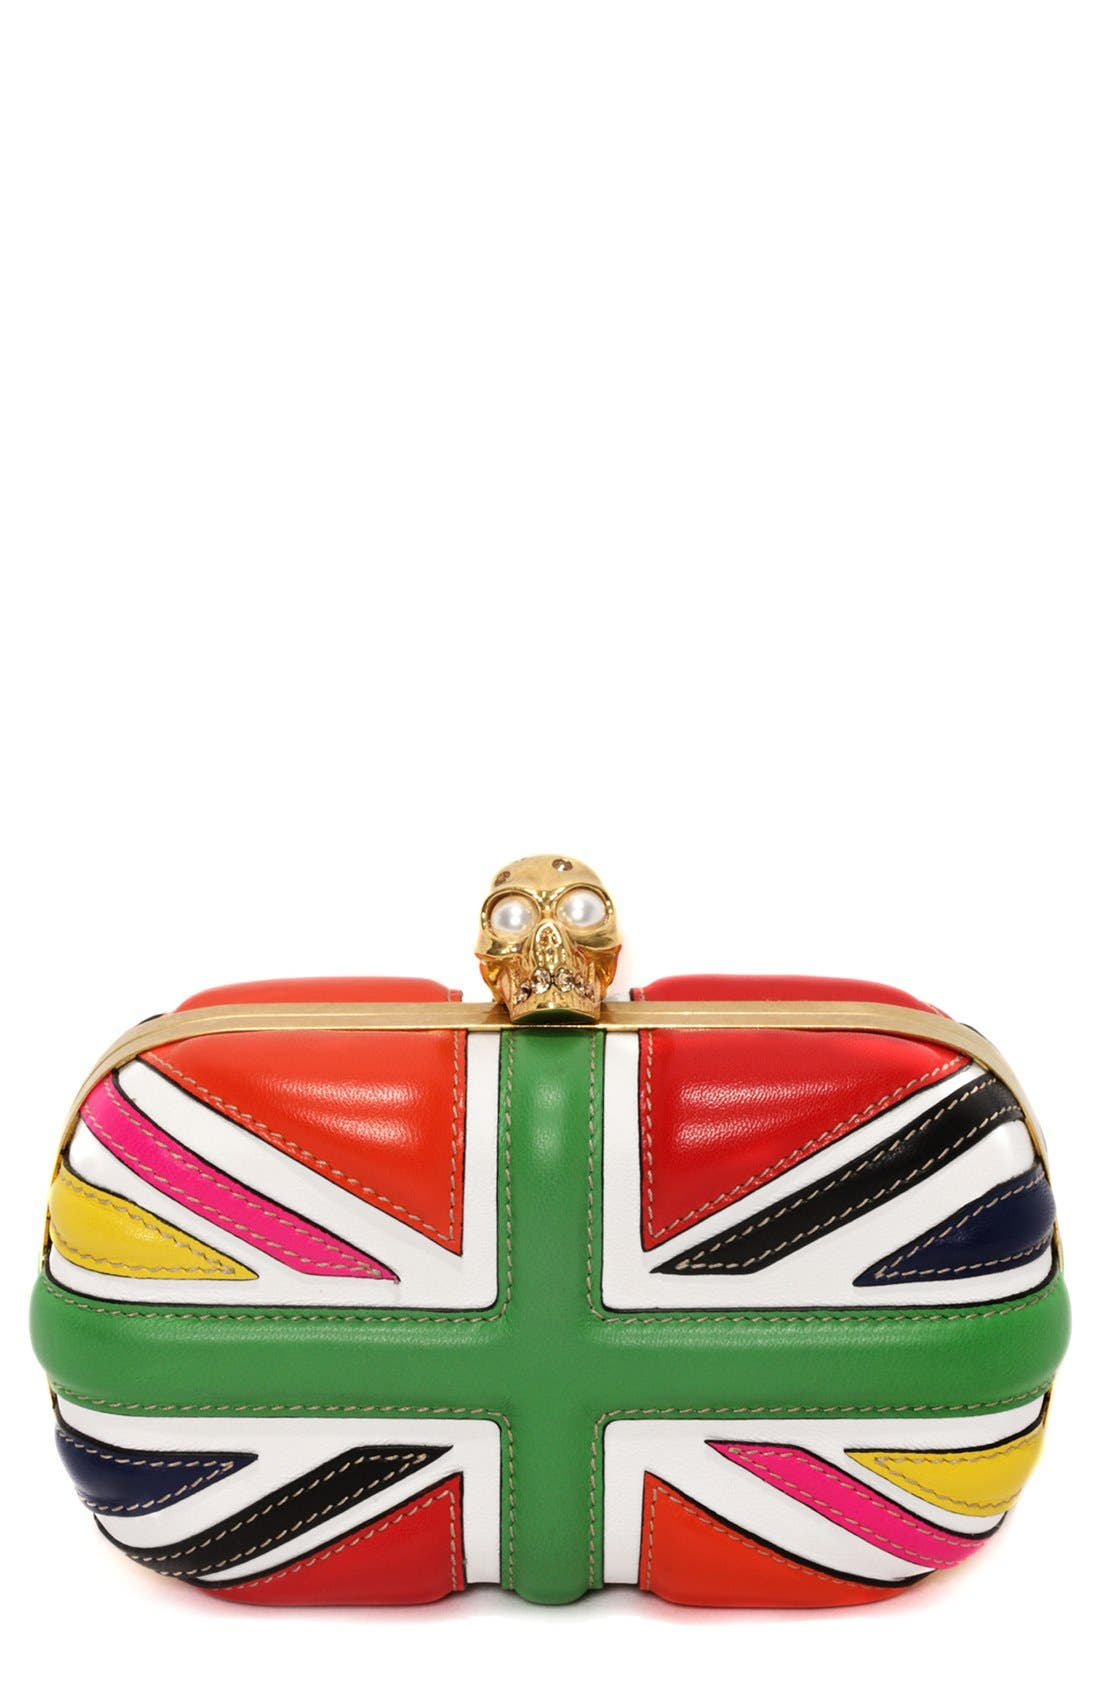 Alternate Image 1 Selected - Alexander McQueen 'Britannia' Clutch